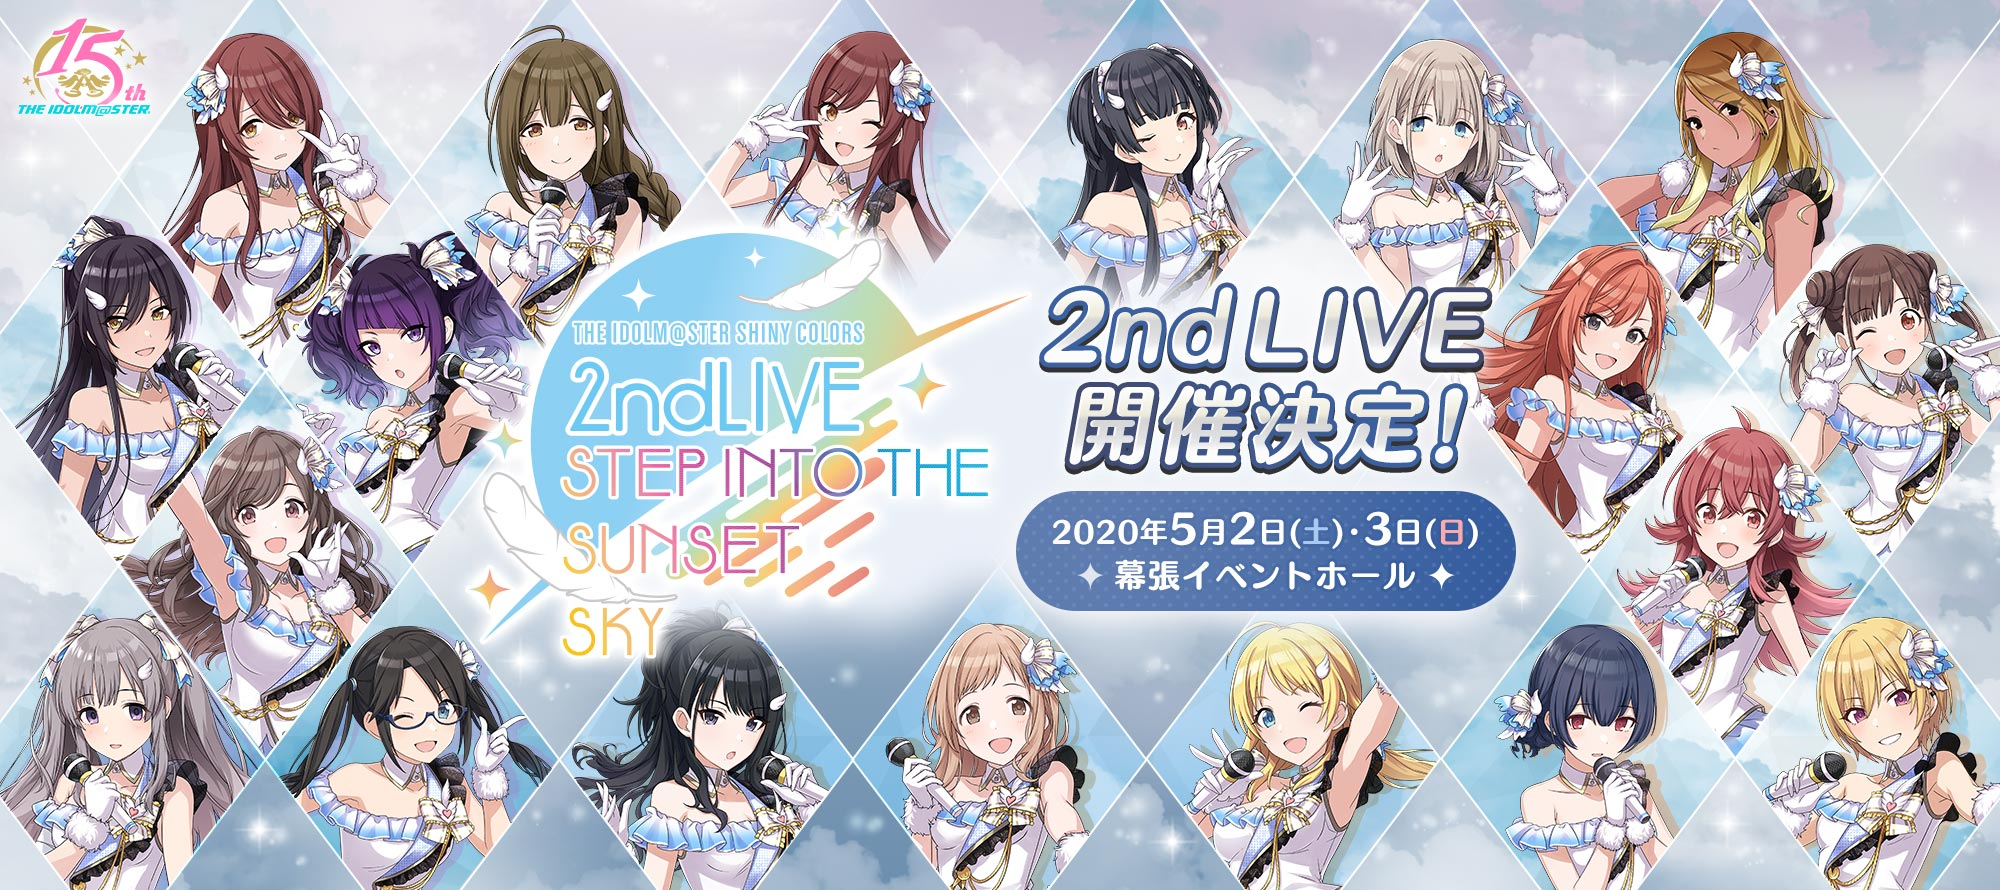 THE IDOLM@STER SHINY COLORS 2ndLIVE 開催決定!